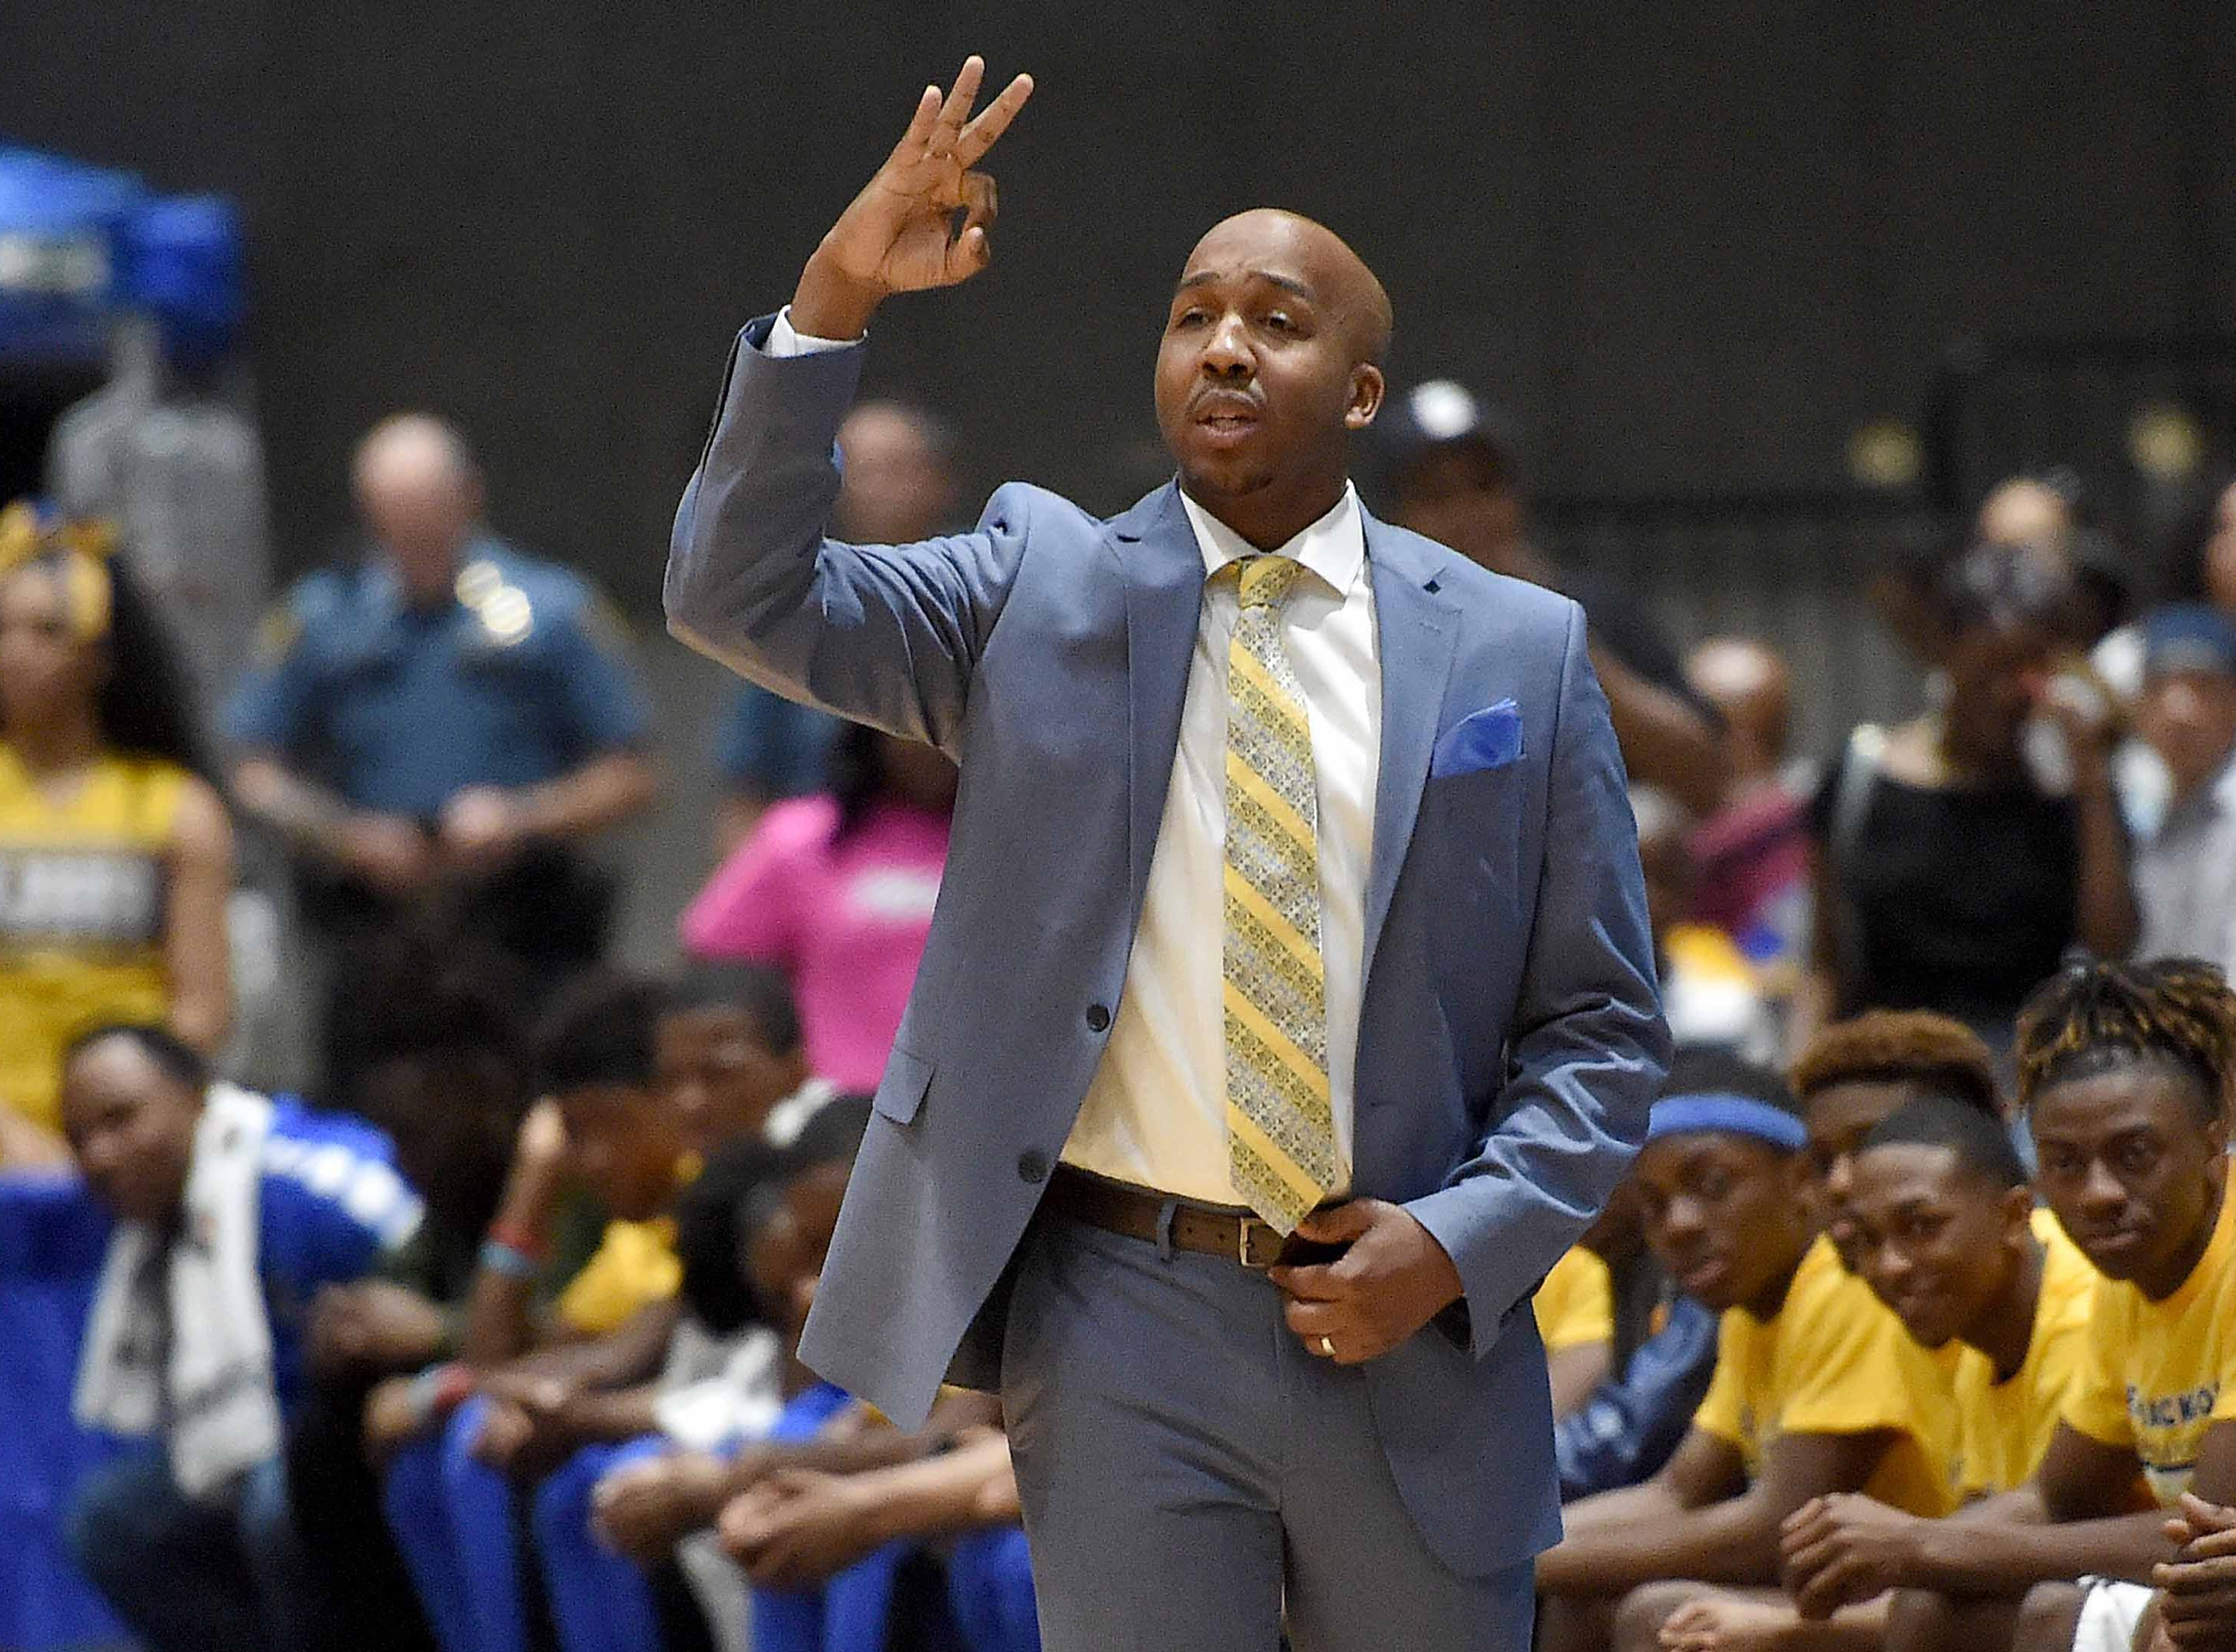 Velma Jackson head coach Chris Love signals a play in the finals of the MHSAA C Spire State Basketball Championships at the Mississippi Coliseum in Jackson, Miss., on Saturday, March 9, 2019.